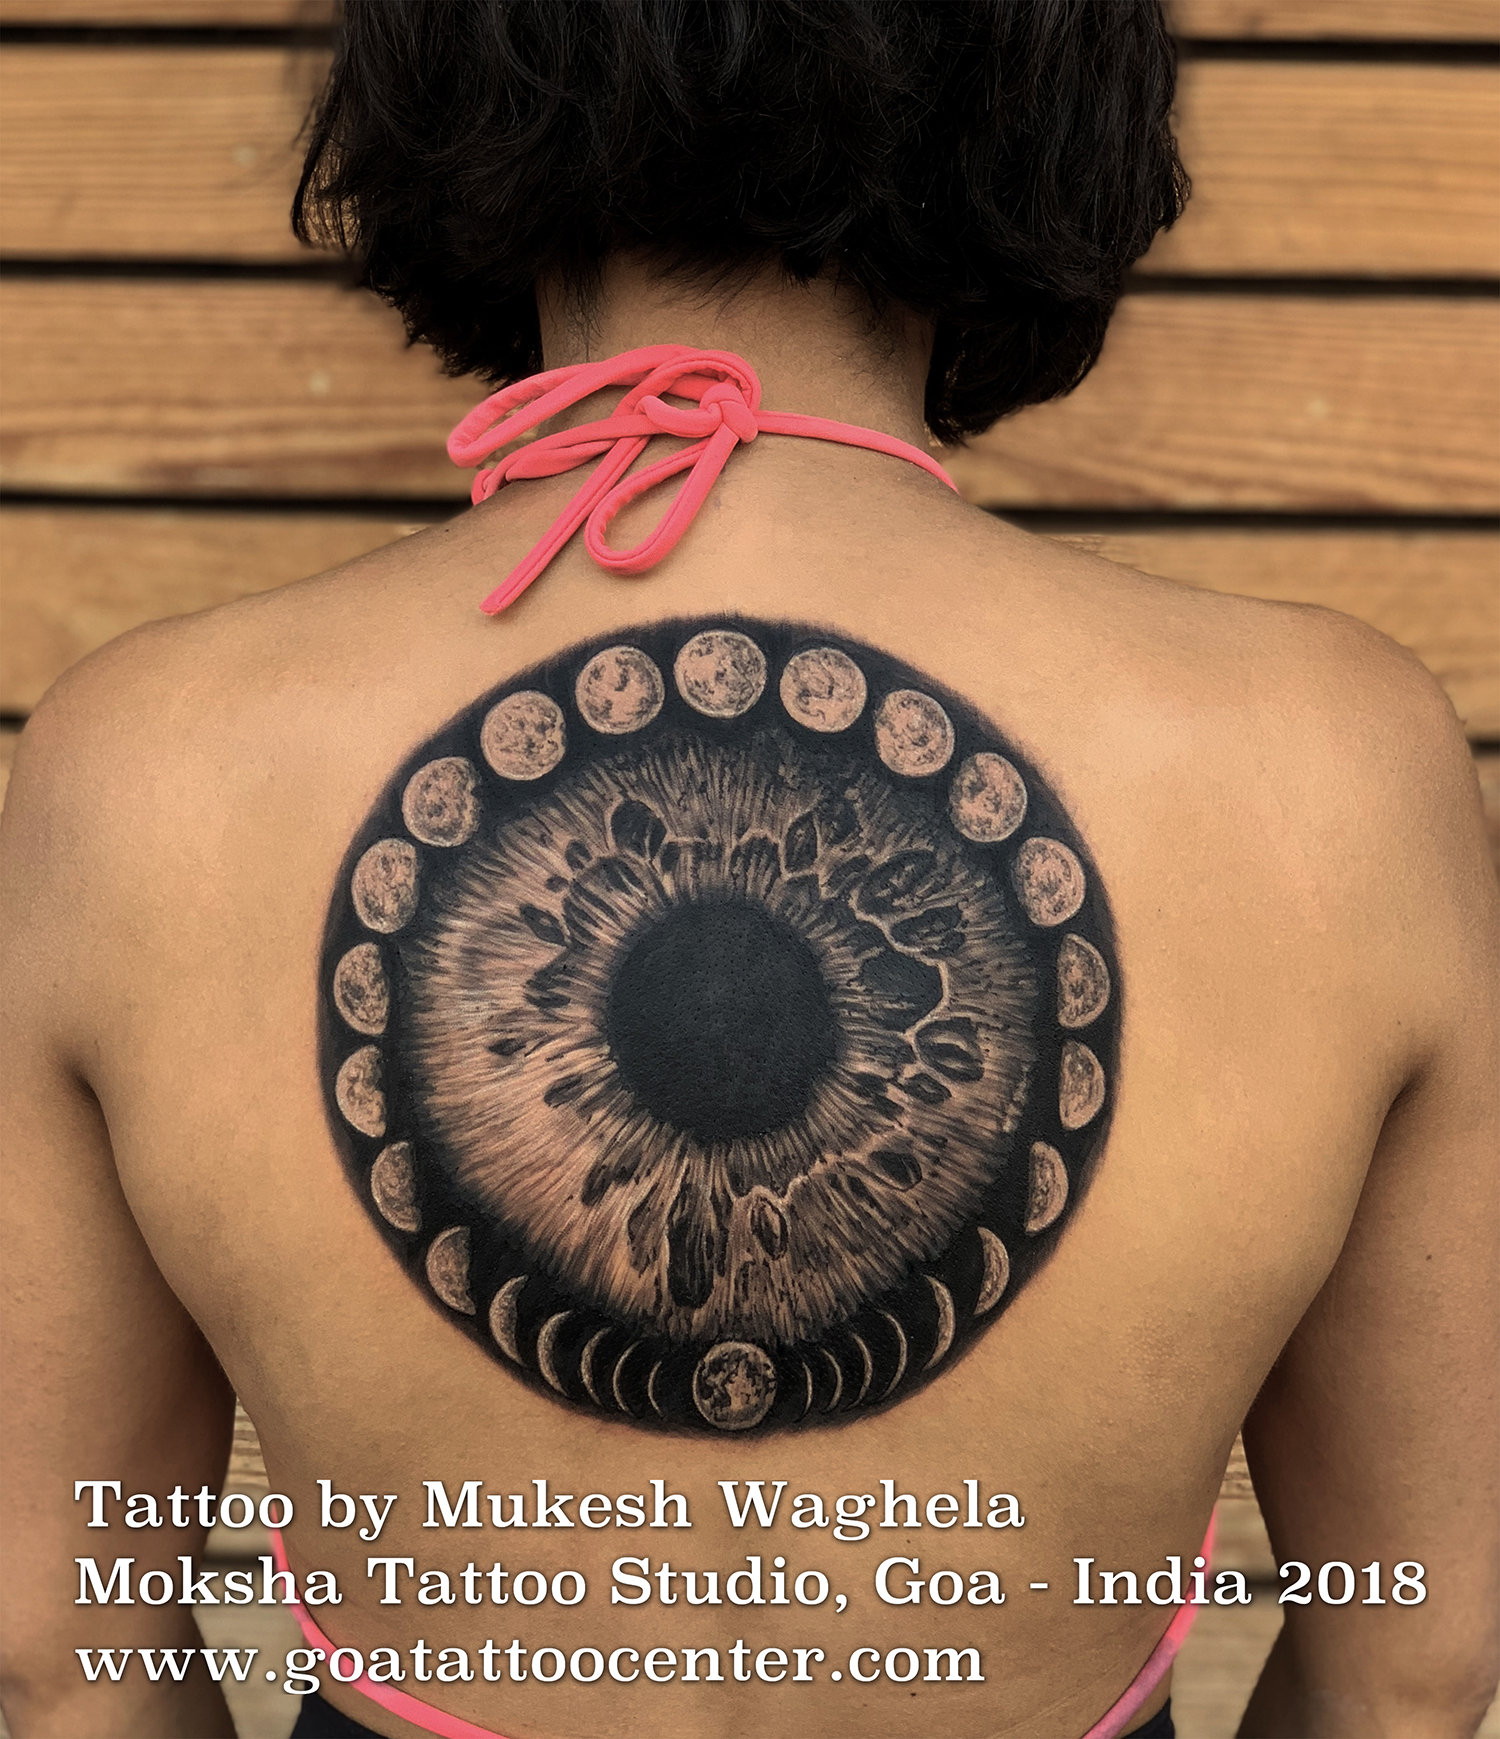 universal-eye-tattoo-mukesh-waghela-moksha-tattoo-studio